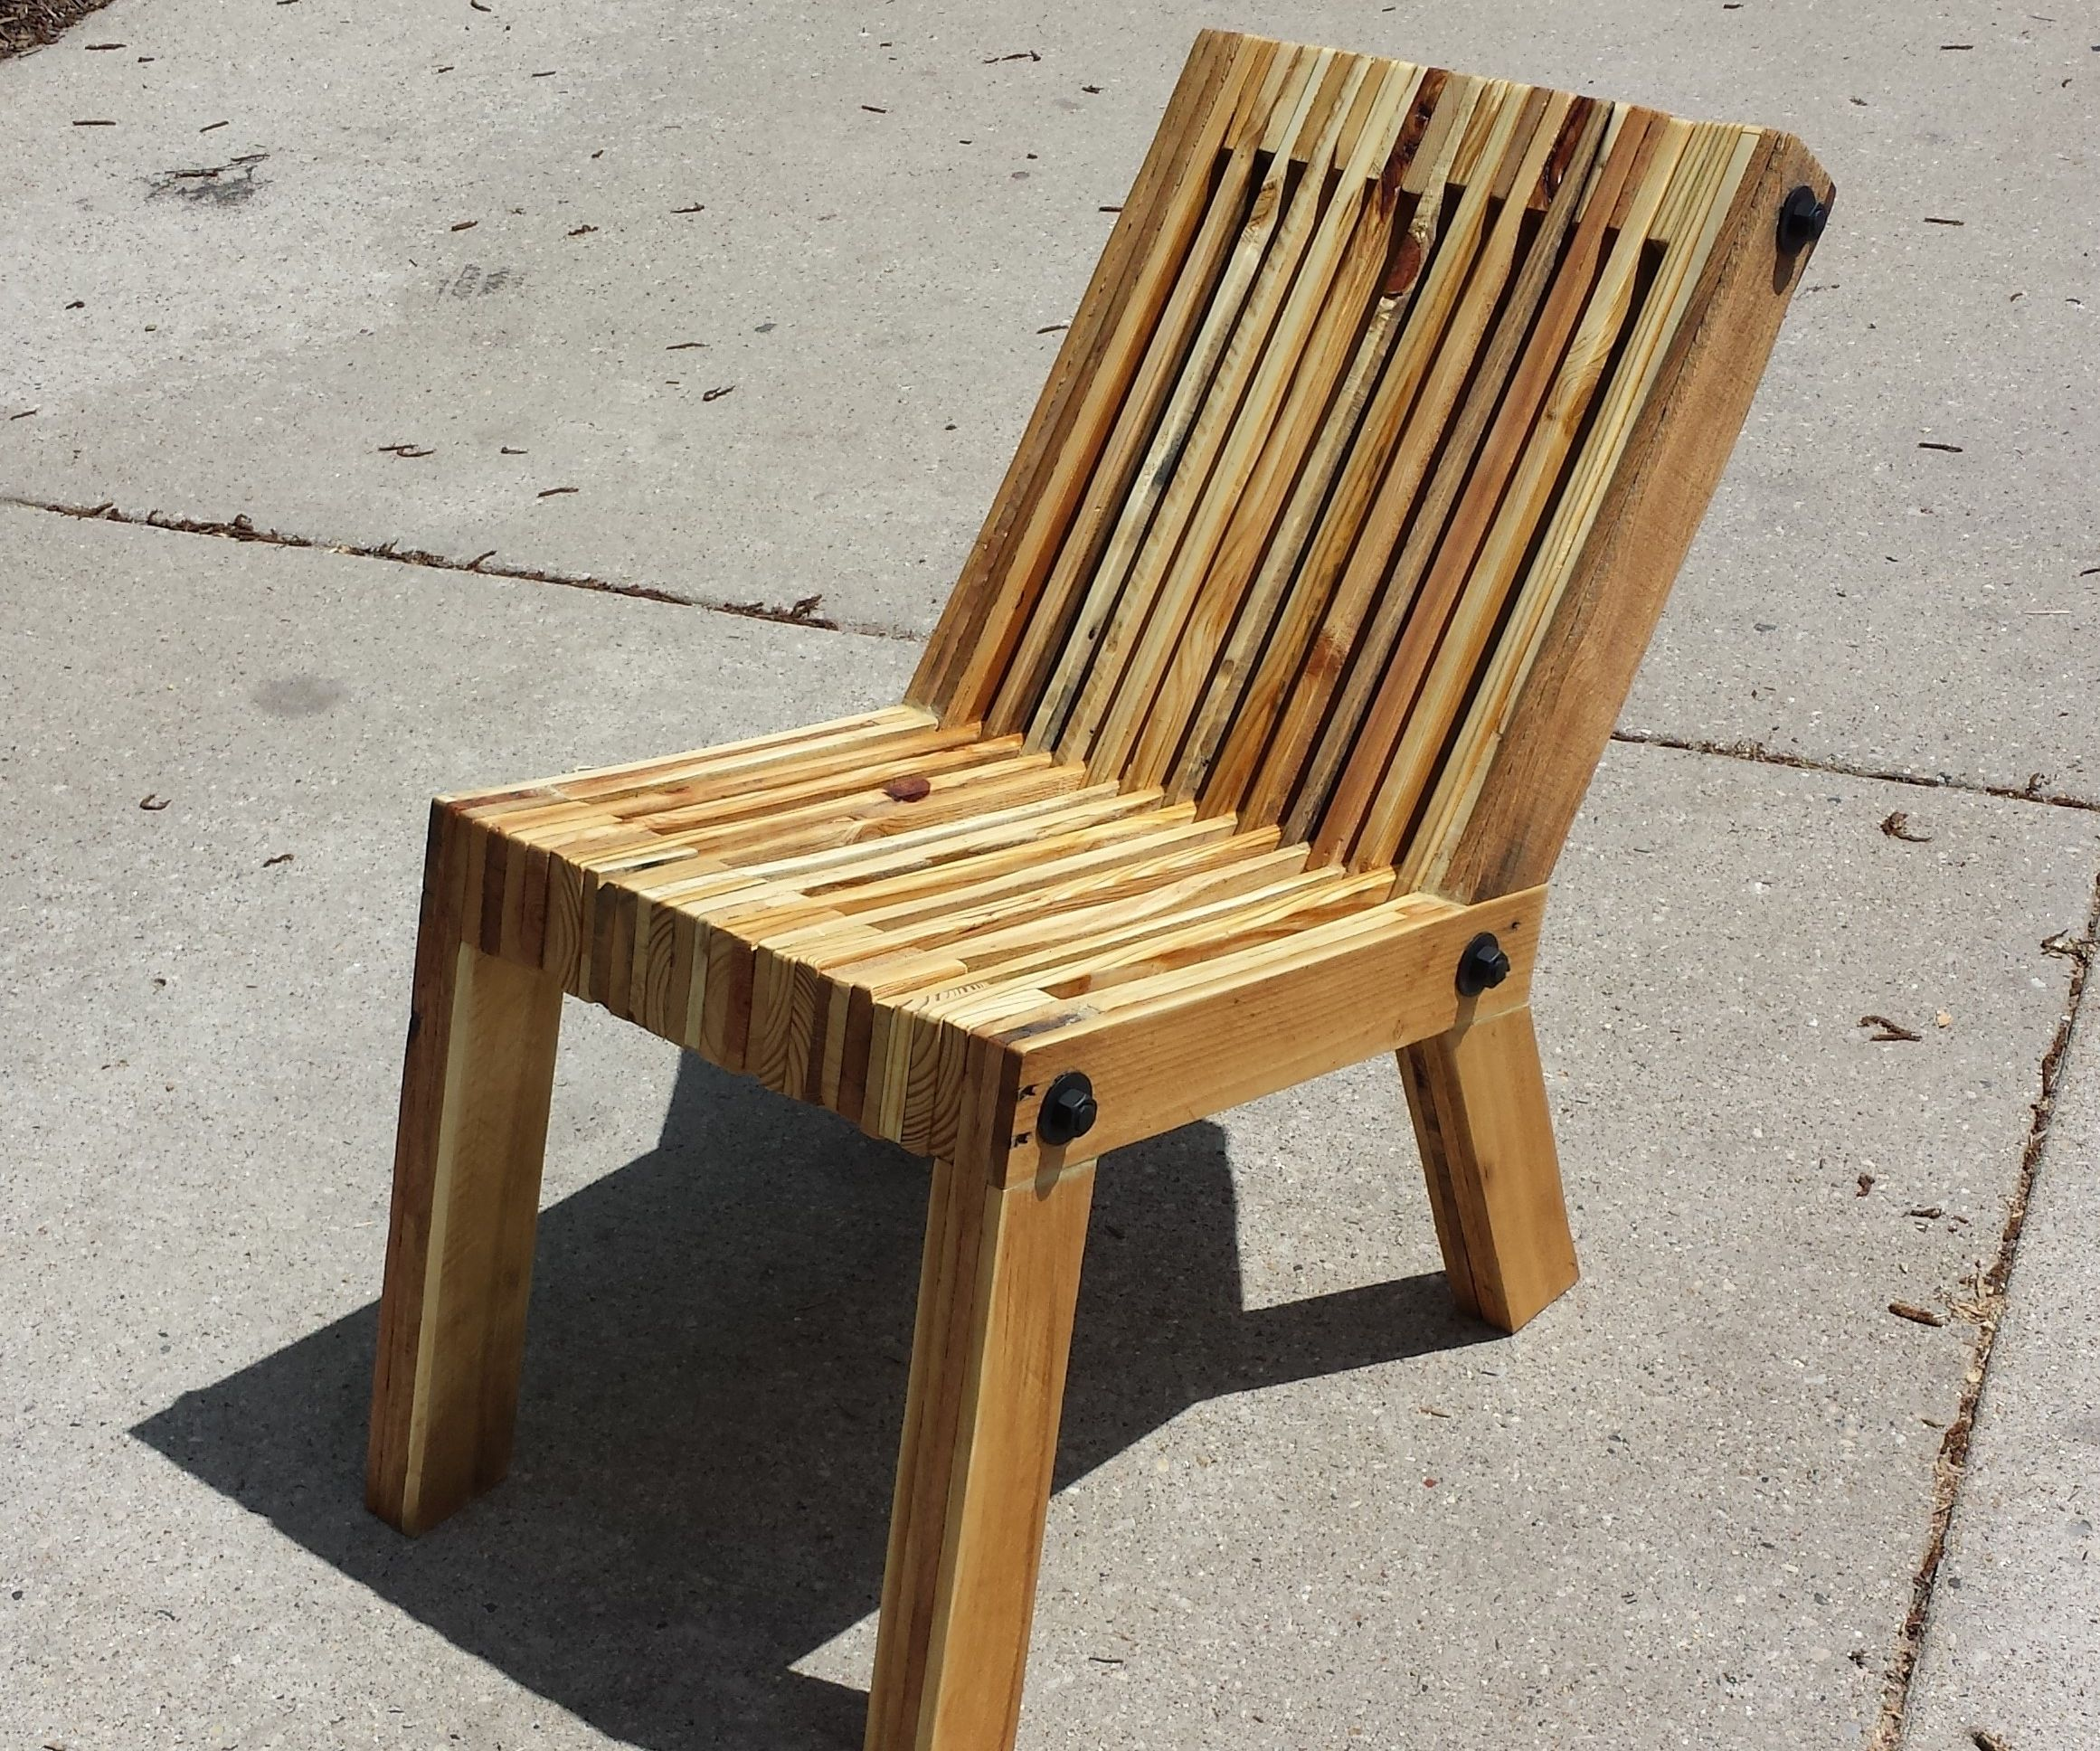 Pallet Furniture – Chairs from Pallets